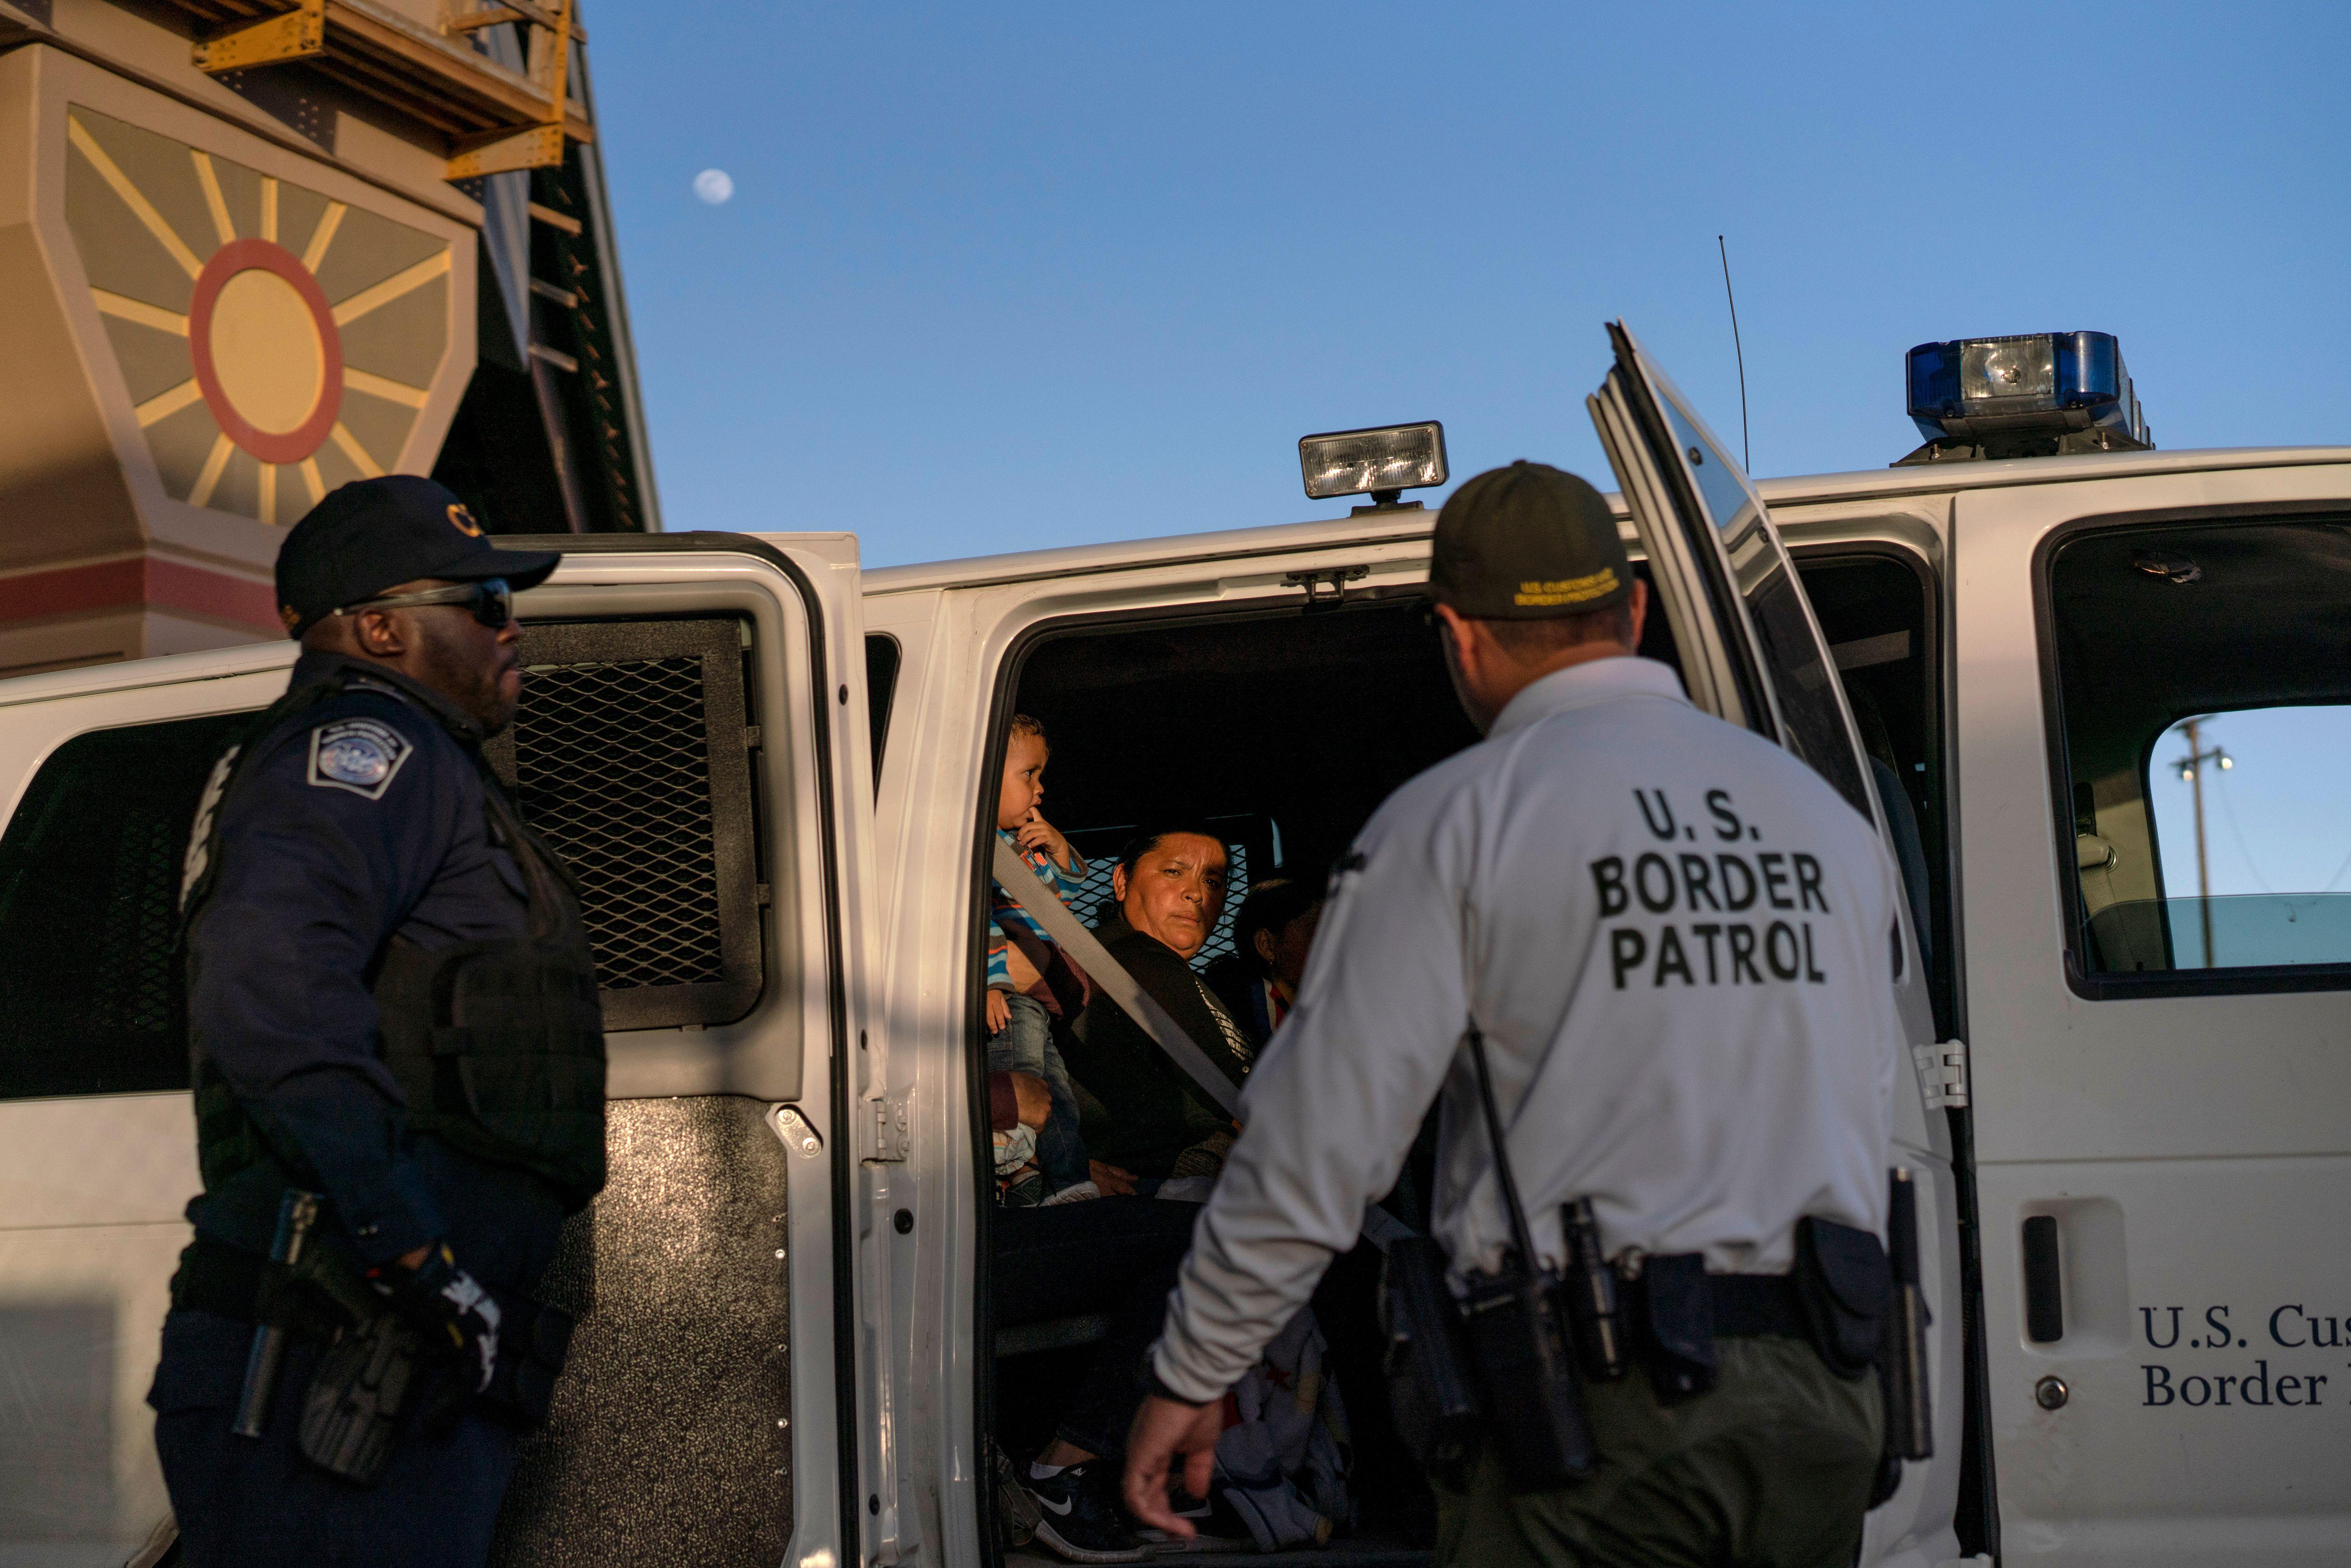 slate.com - Molly Olmstead - Border Patrol Agent Charged With Hitting Guatemalan Man With Truck Had Called Migrants 'Subhuman' and 'Savages'